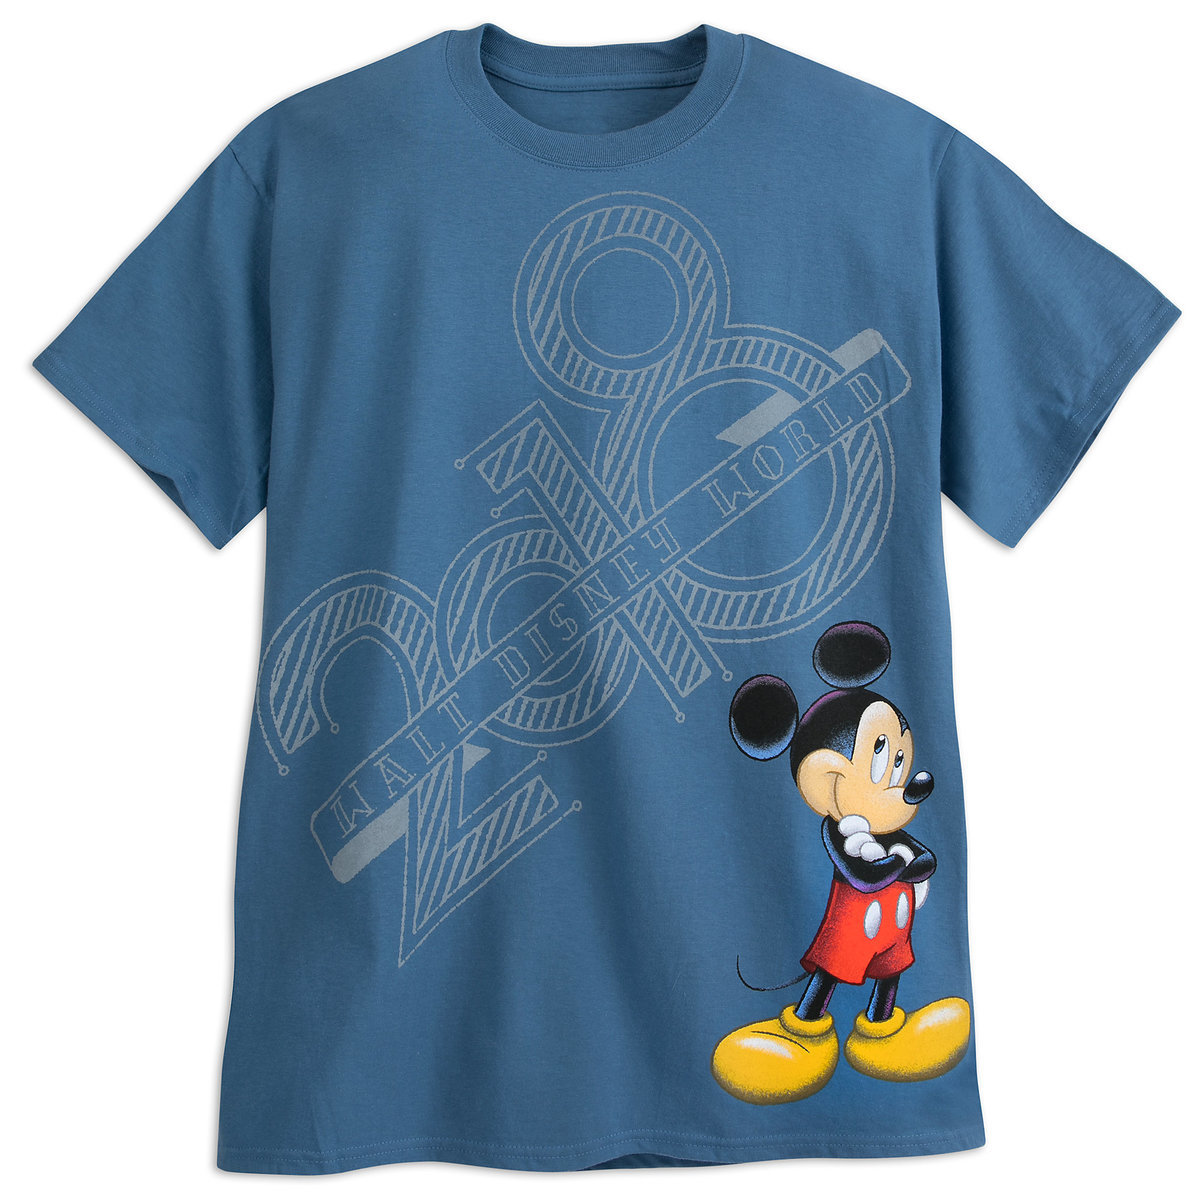 1c8627b4 Product Image of Mickey Mouse T-Shirt for Adults - Walt Disney World 2018 #